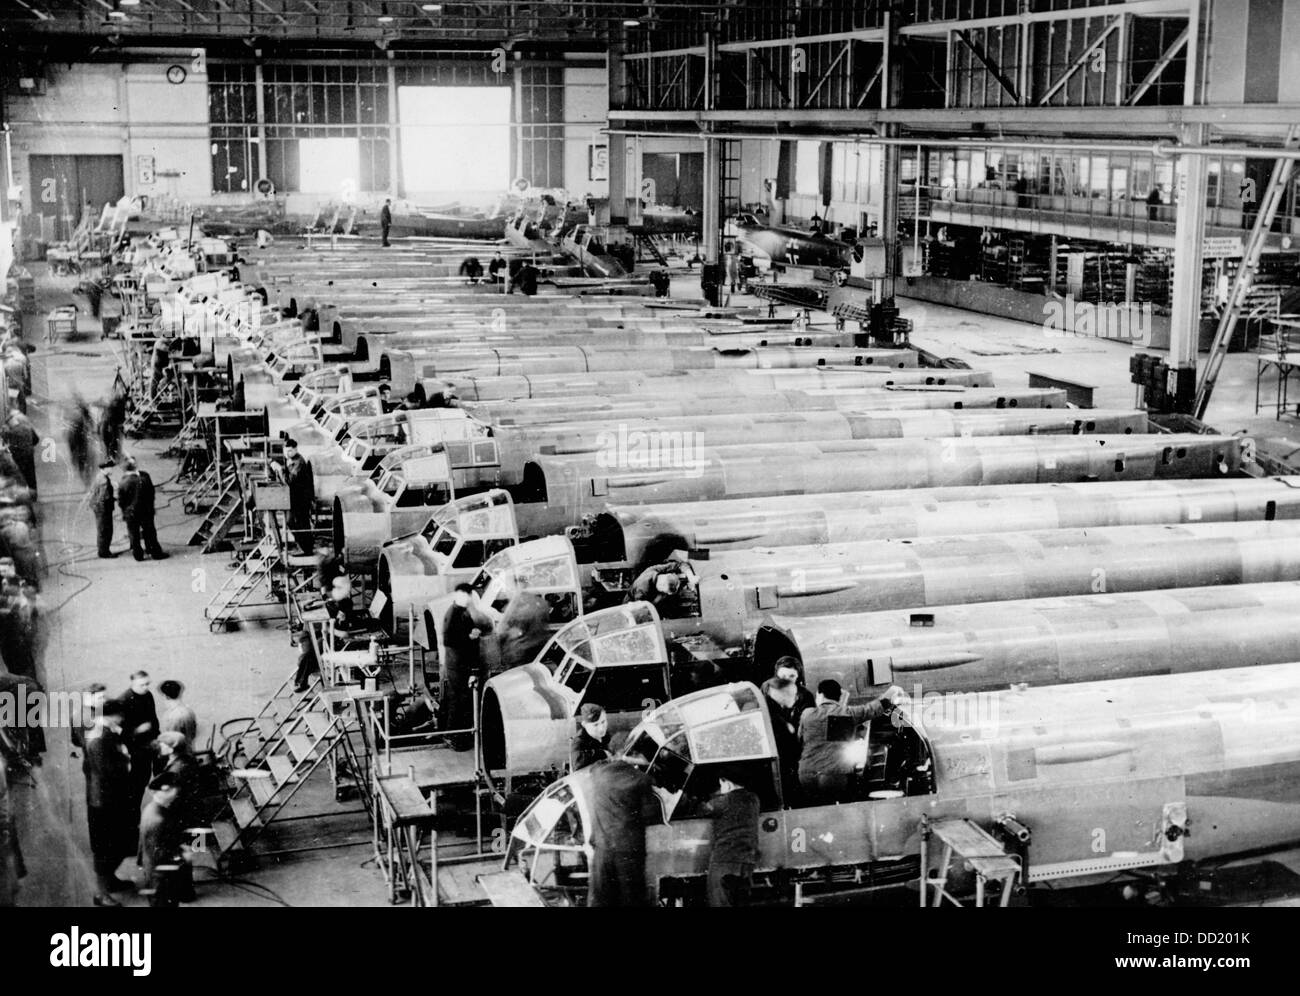 junkers aircraft factory stockfotos junkers aircraft factory bilder alamy. Black Bedroom Furniture Sets. Home Design Ideas